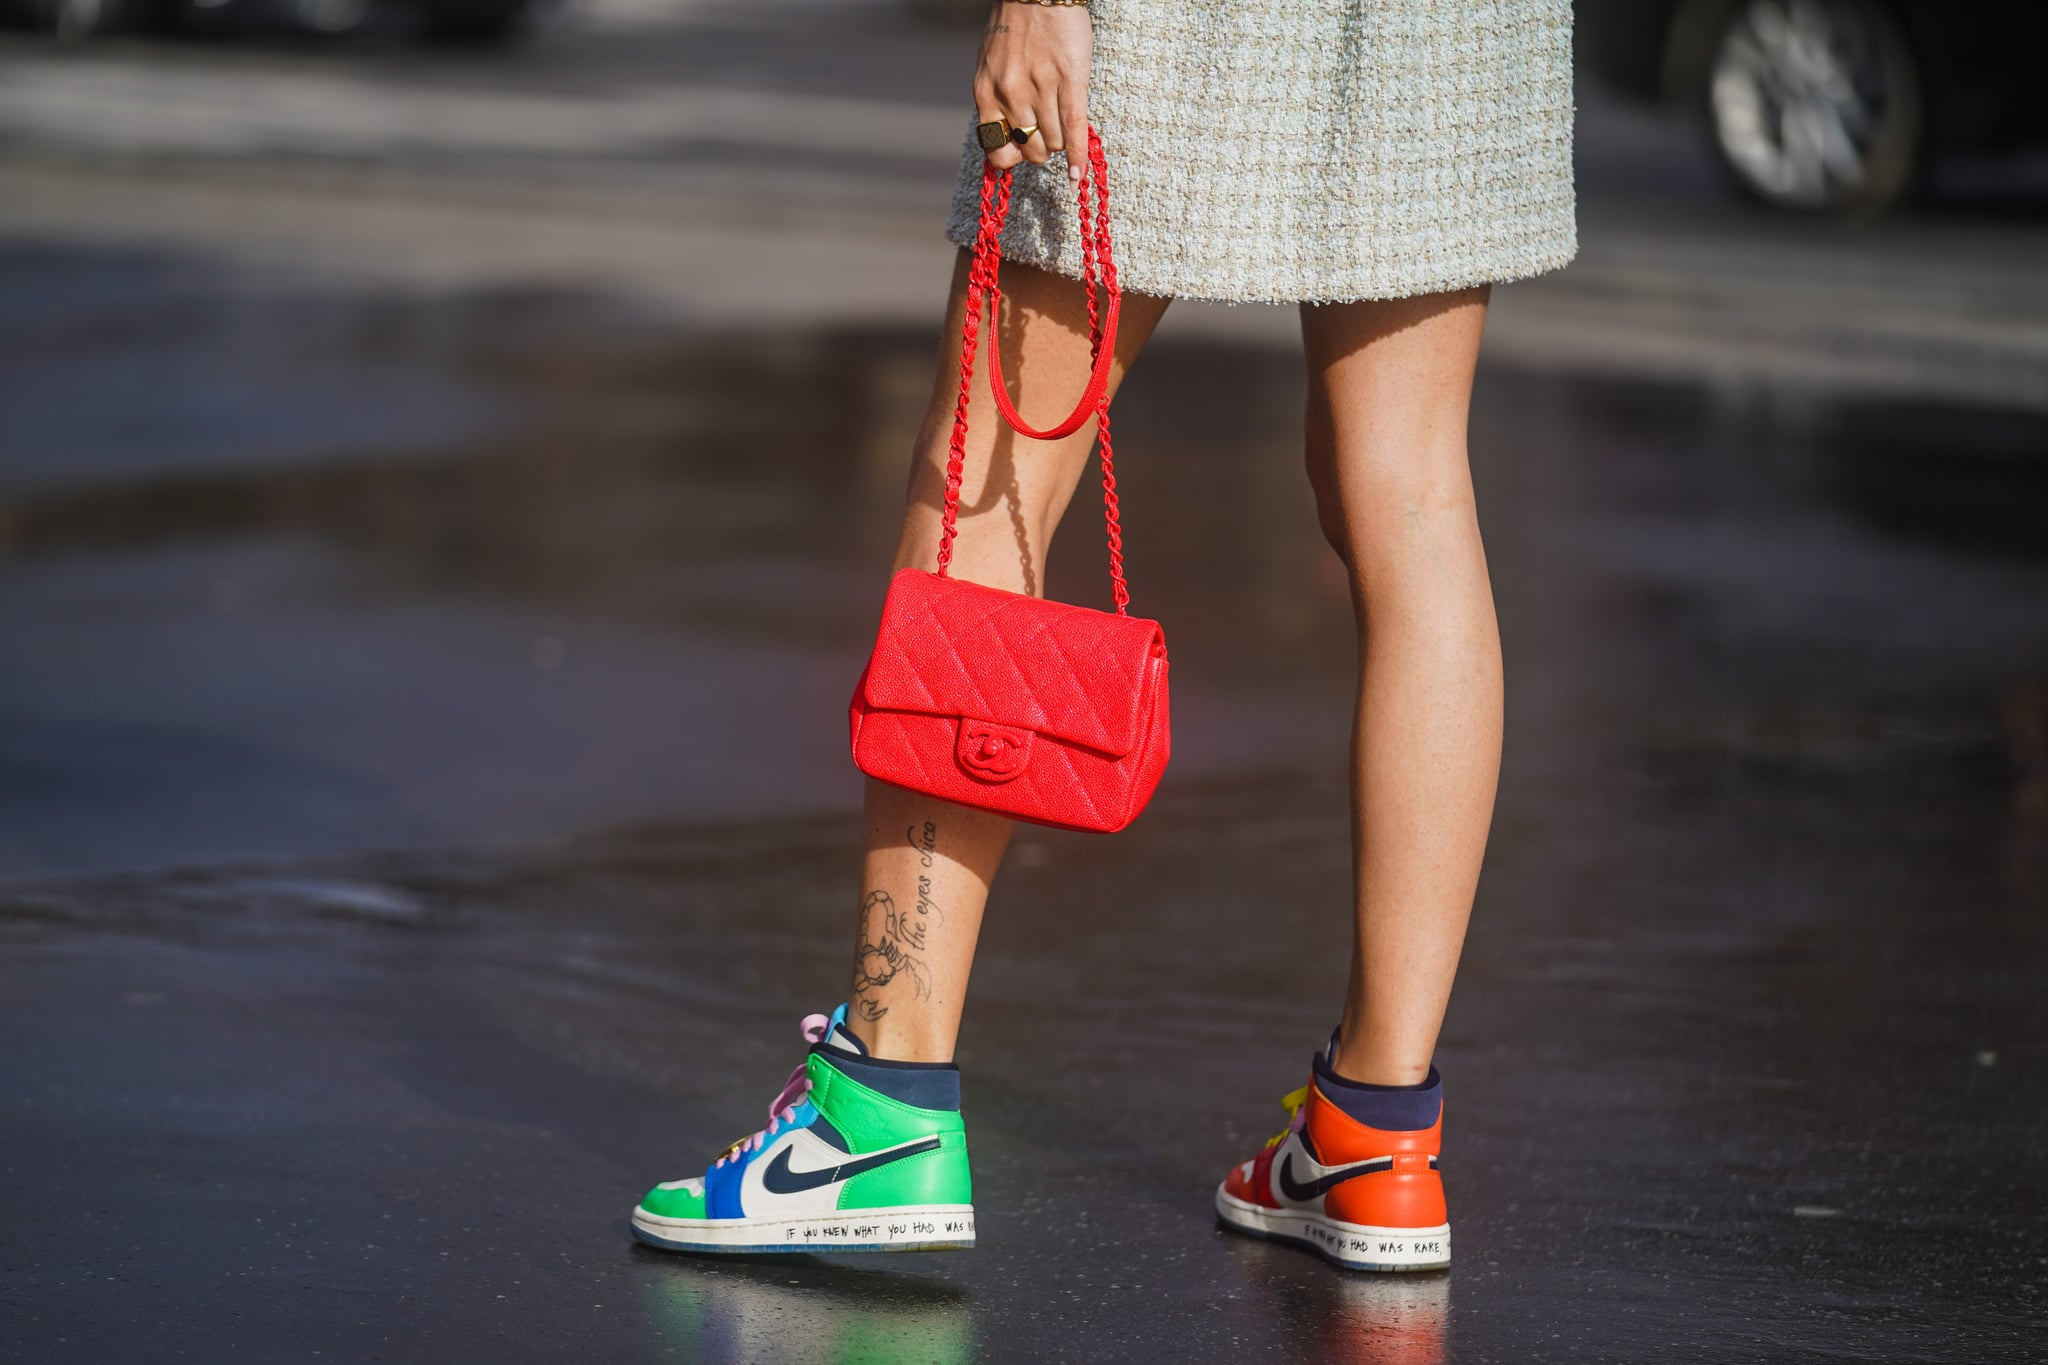 PARIS, FRANCE - MARCH 03: A guest wears a red quilted Chanel bag, Nike colored sneakers shoes, outside Chanel, during Paris Fashion Week - Womenswear Fall/Winter 2020/2021 on March 03, 2020 in Paris, France. (Photo by Edward Berthelot/Getty Images)